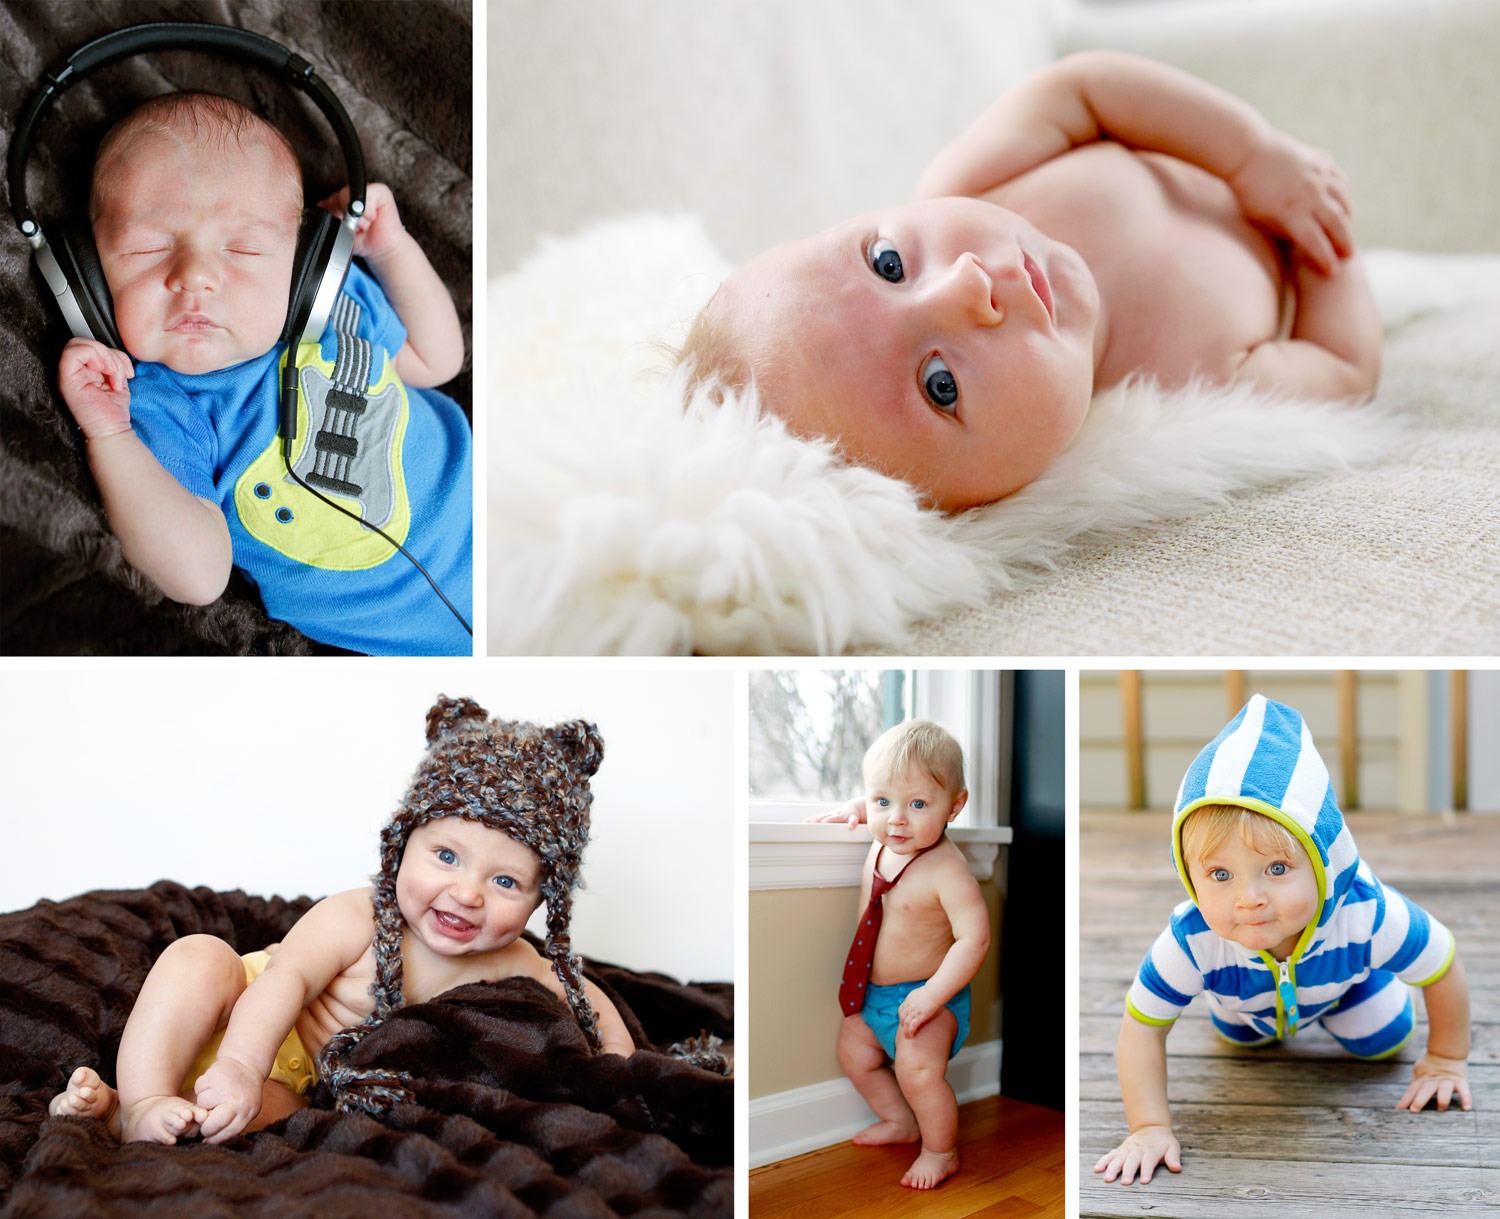 baby-portraits-lifestyle-candid-year-one-ruthie-hauge-photography-newborn-infant-fox-valley-geneva.jpg